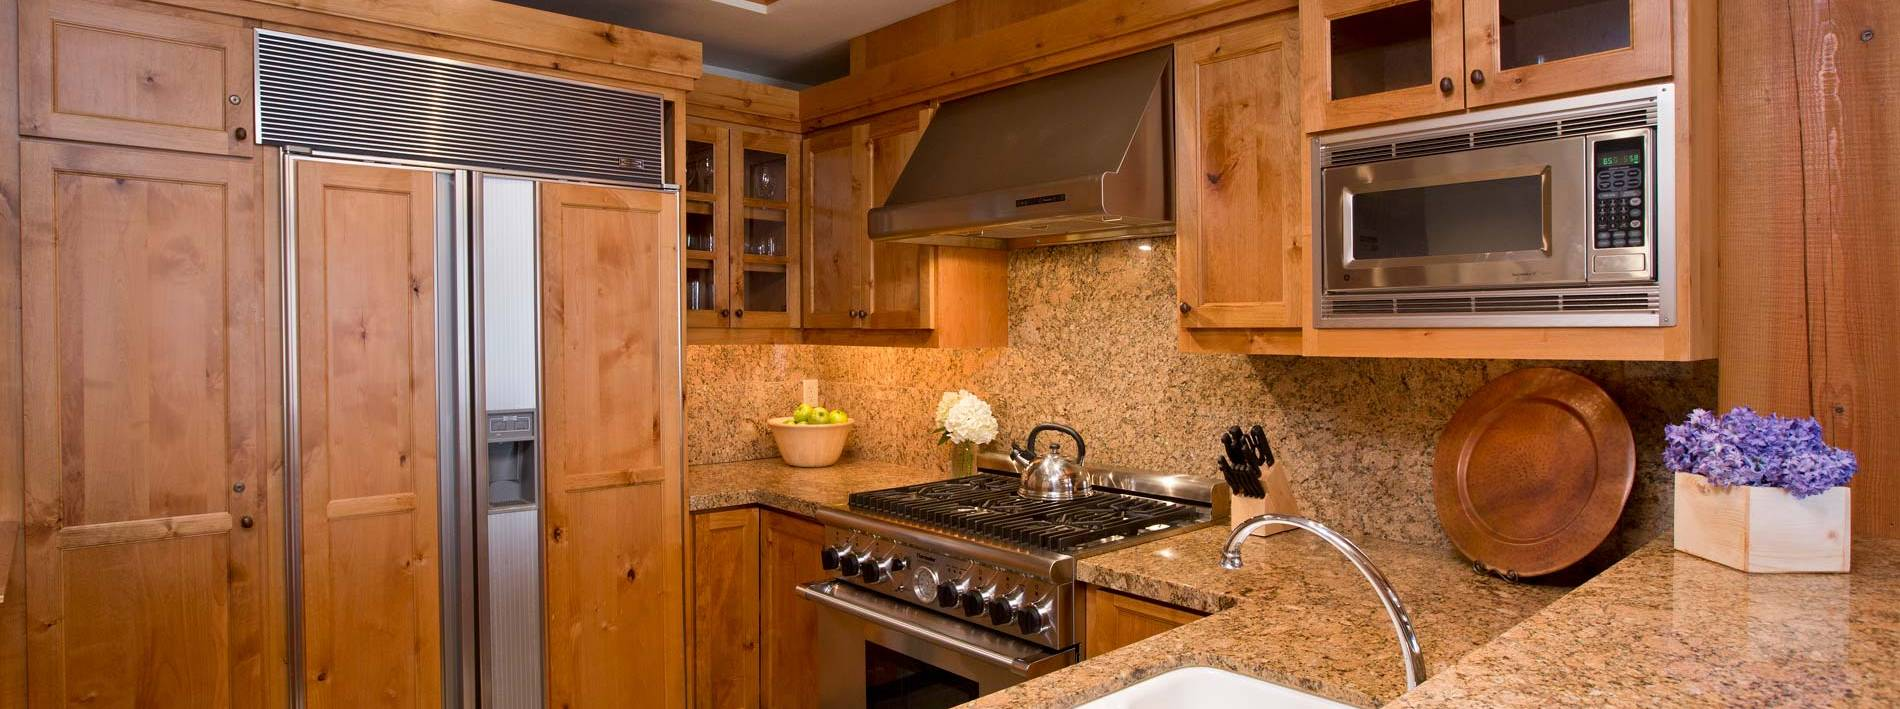 Large kitchen in Paintbrush private home rental